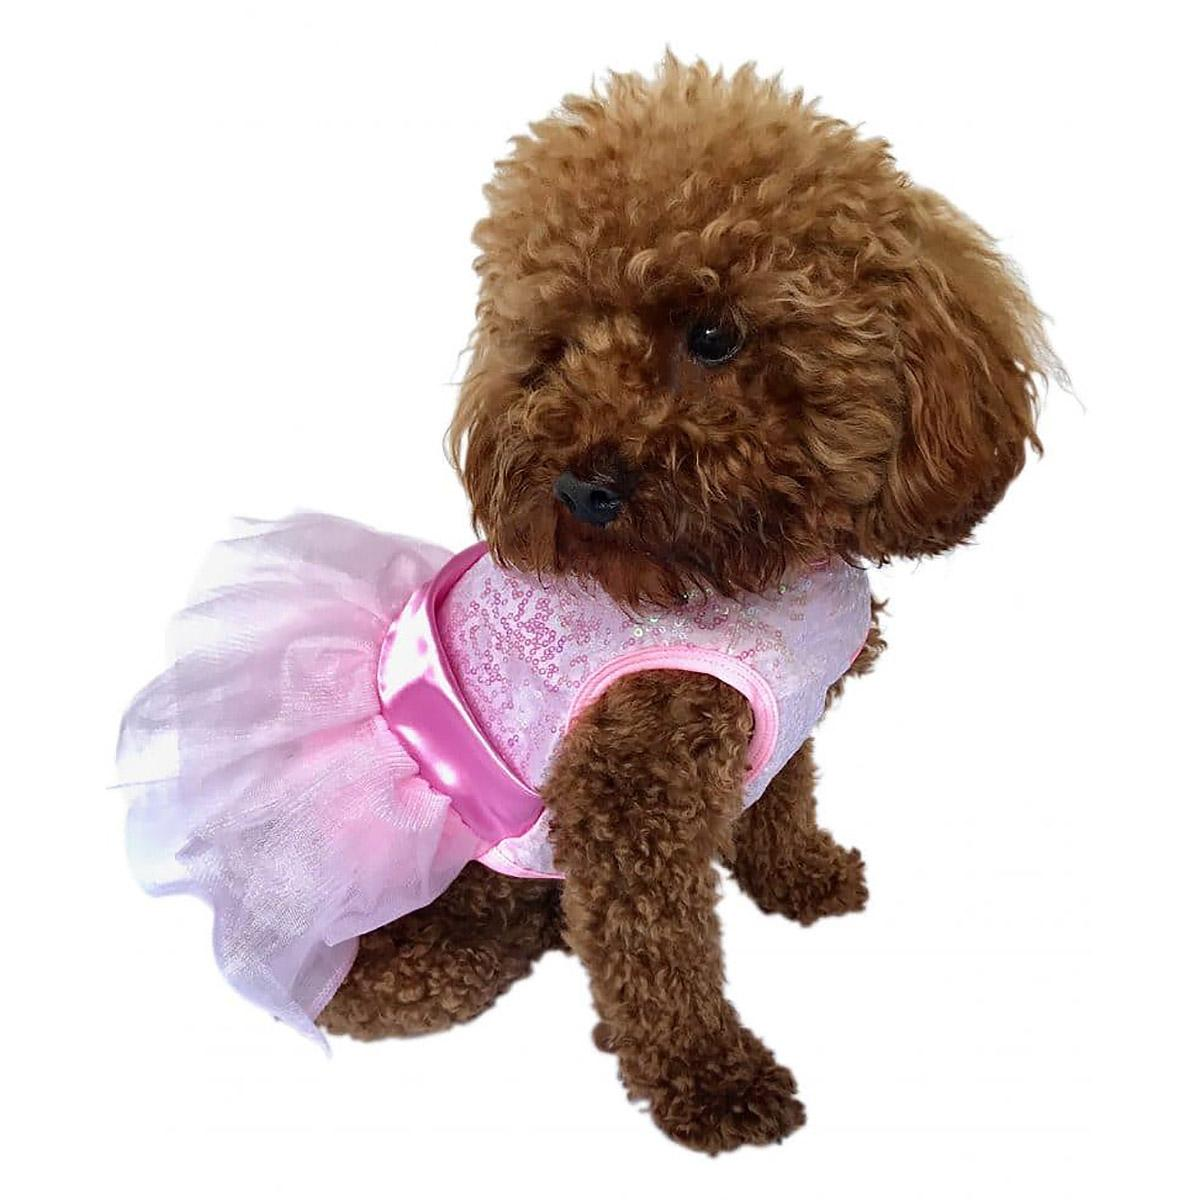 Fufu Tutu Zsa Zsa Sequin Dog Dress - Pink